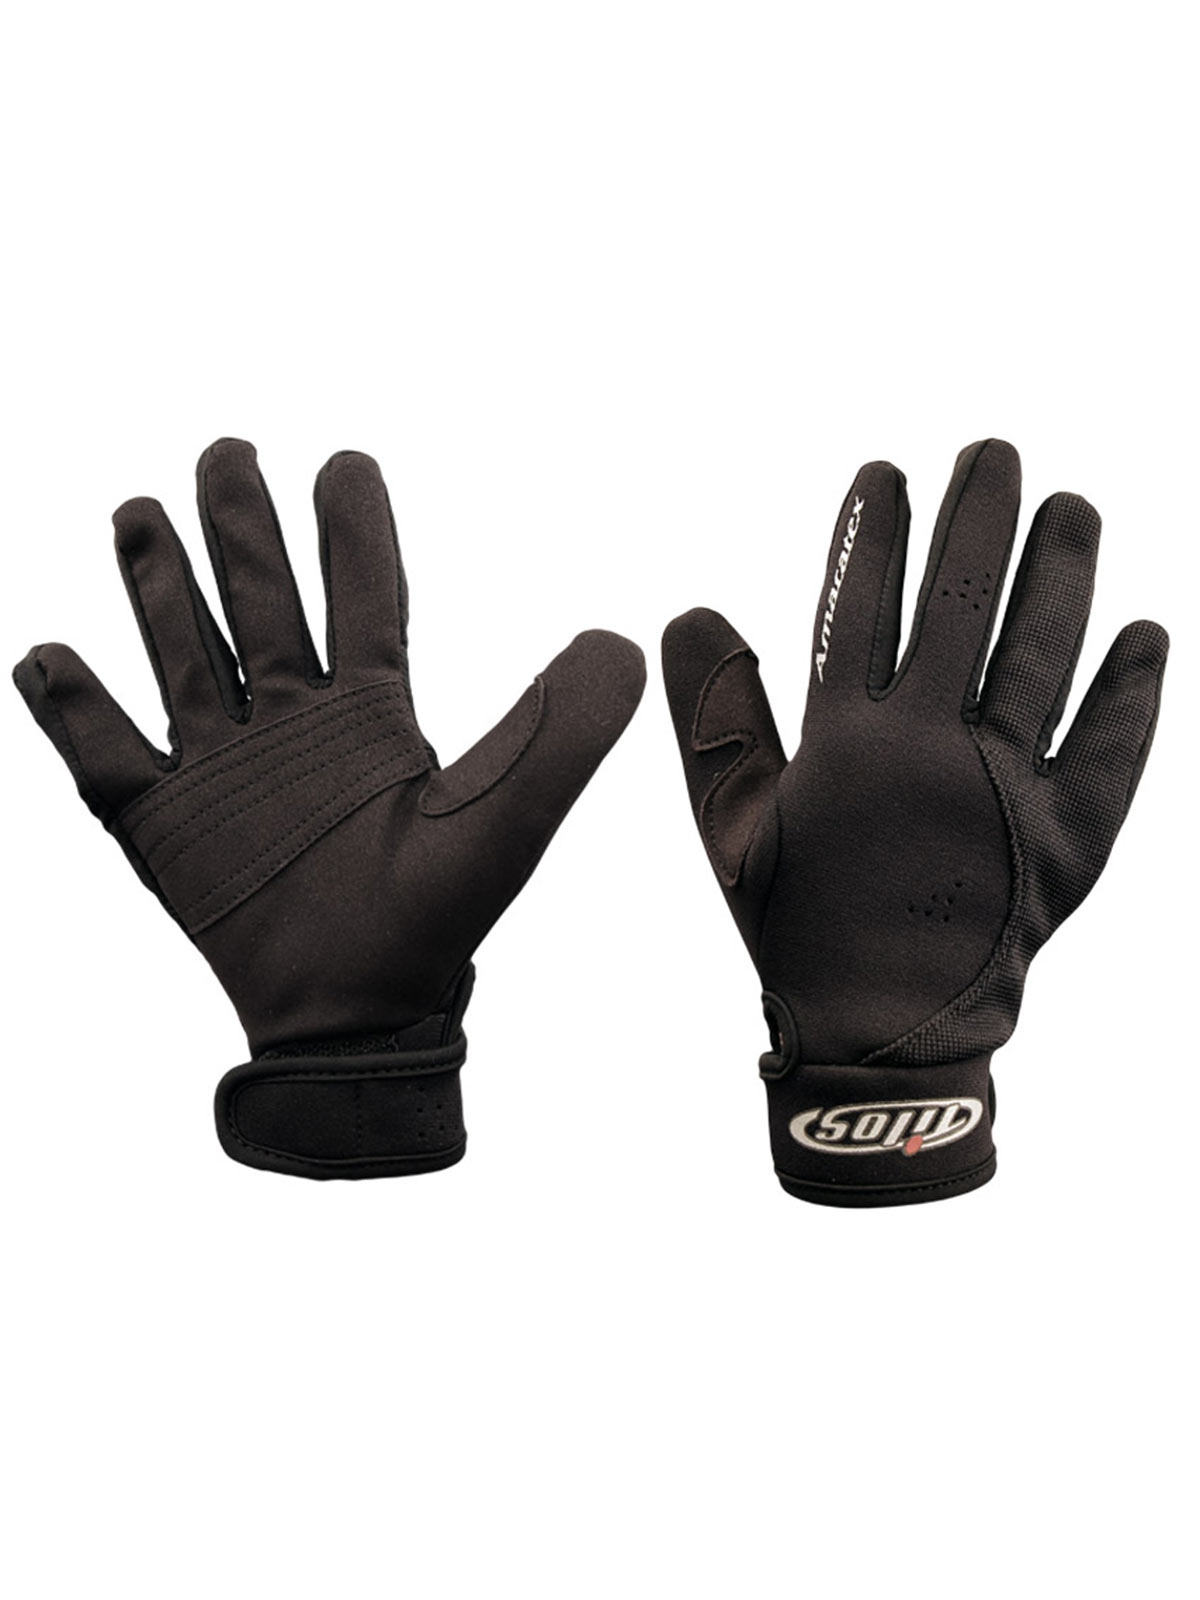 Tilos 1.5mm Neoprene Mesh Water Sports Gloves by Tilos